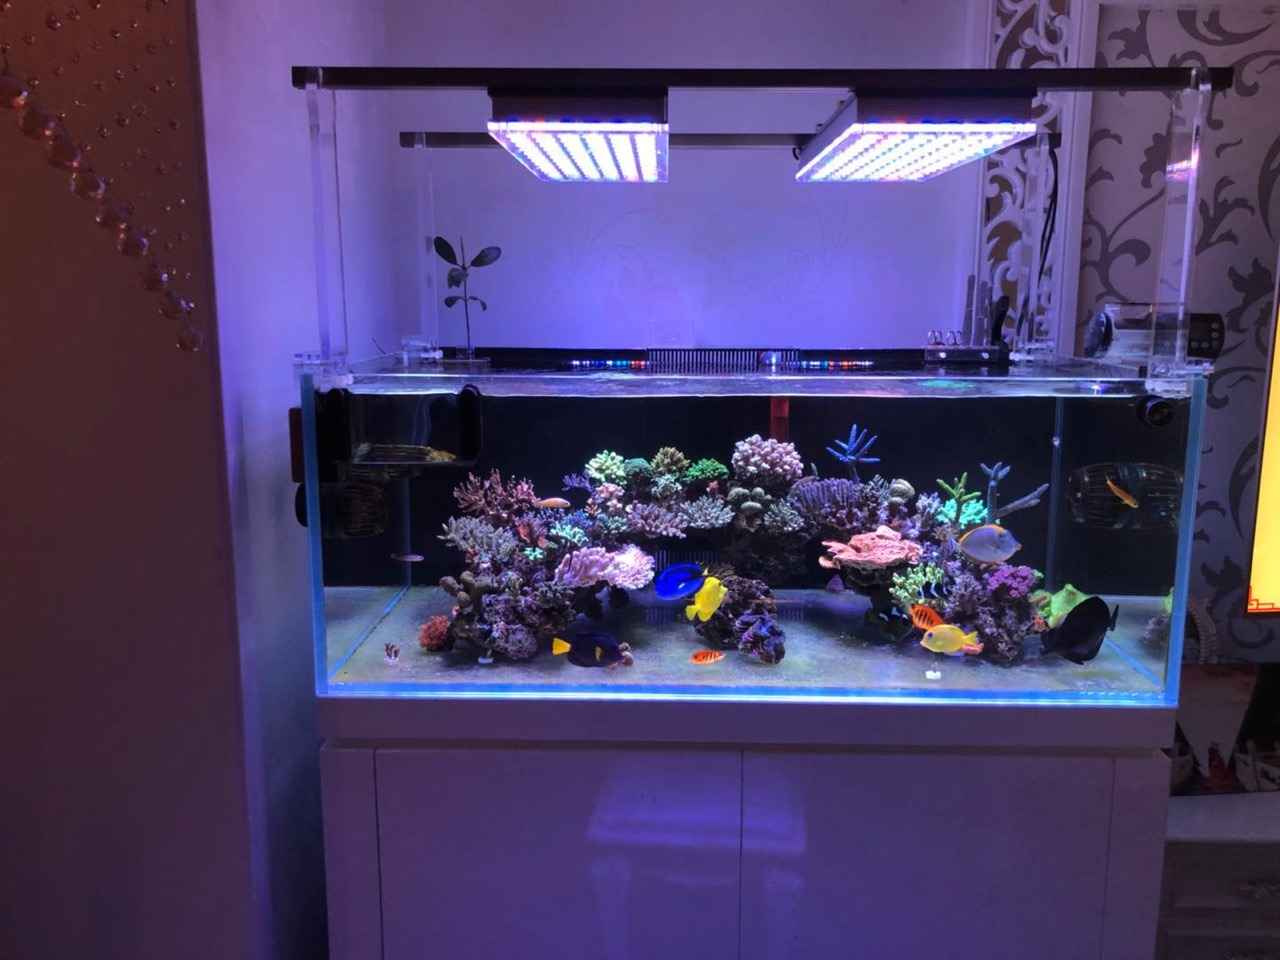 Mounting aquarium LED lighting